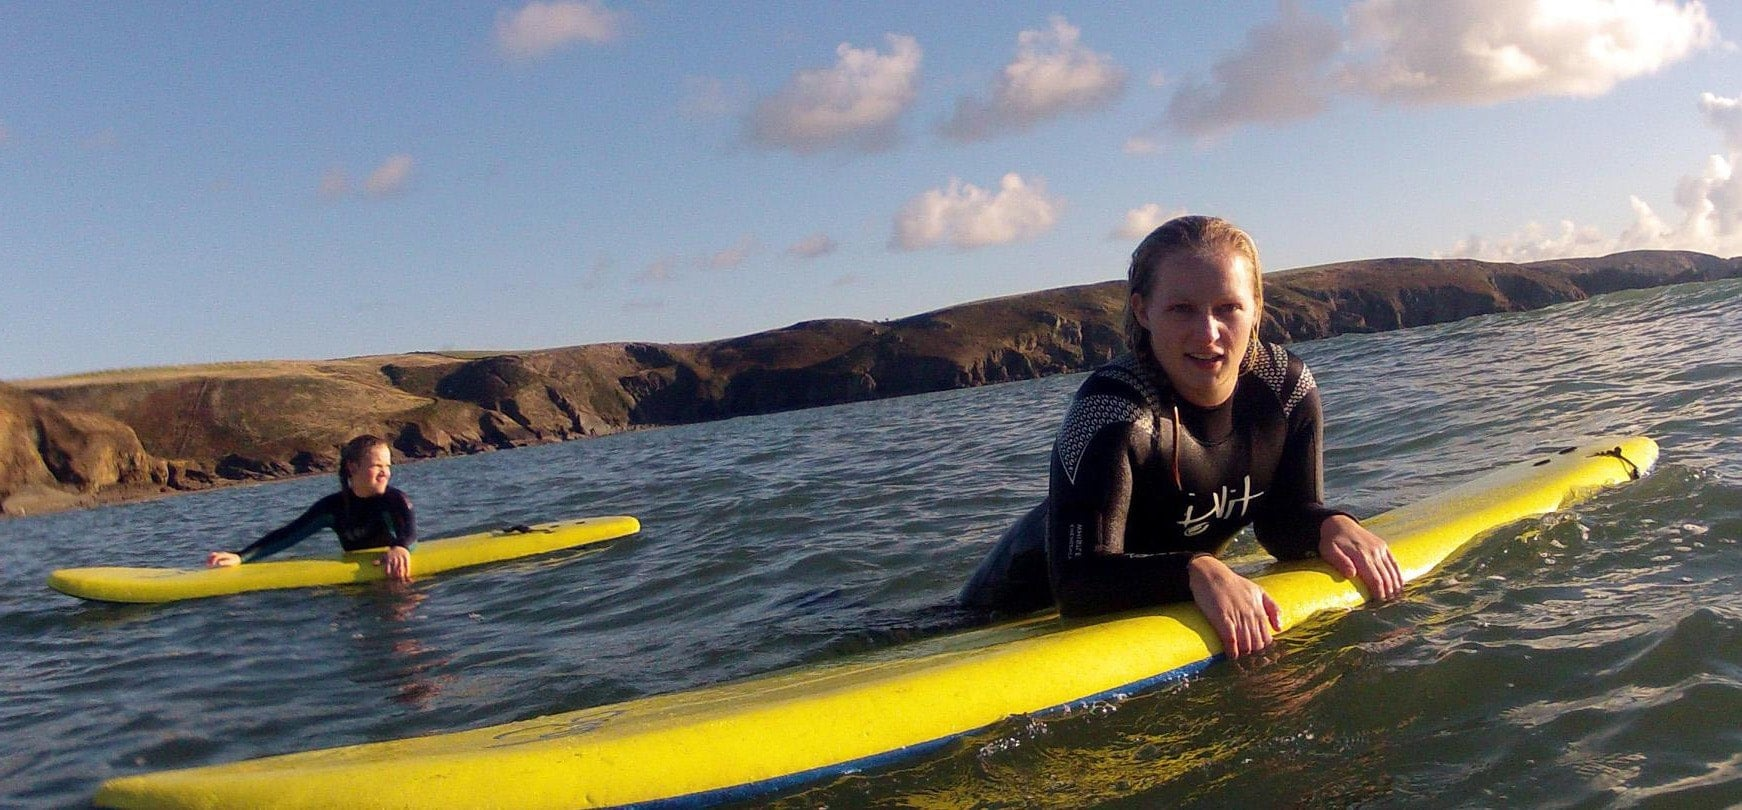 Full Day Surfing Lesson in Pembrokeshire-3